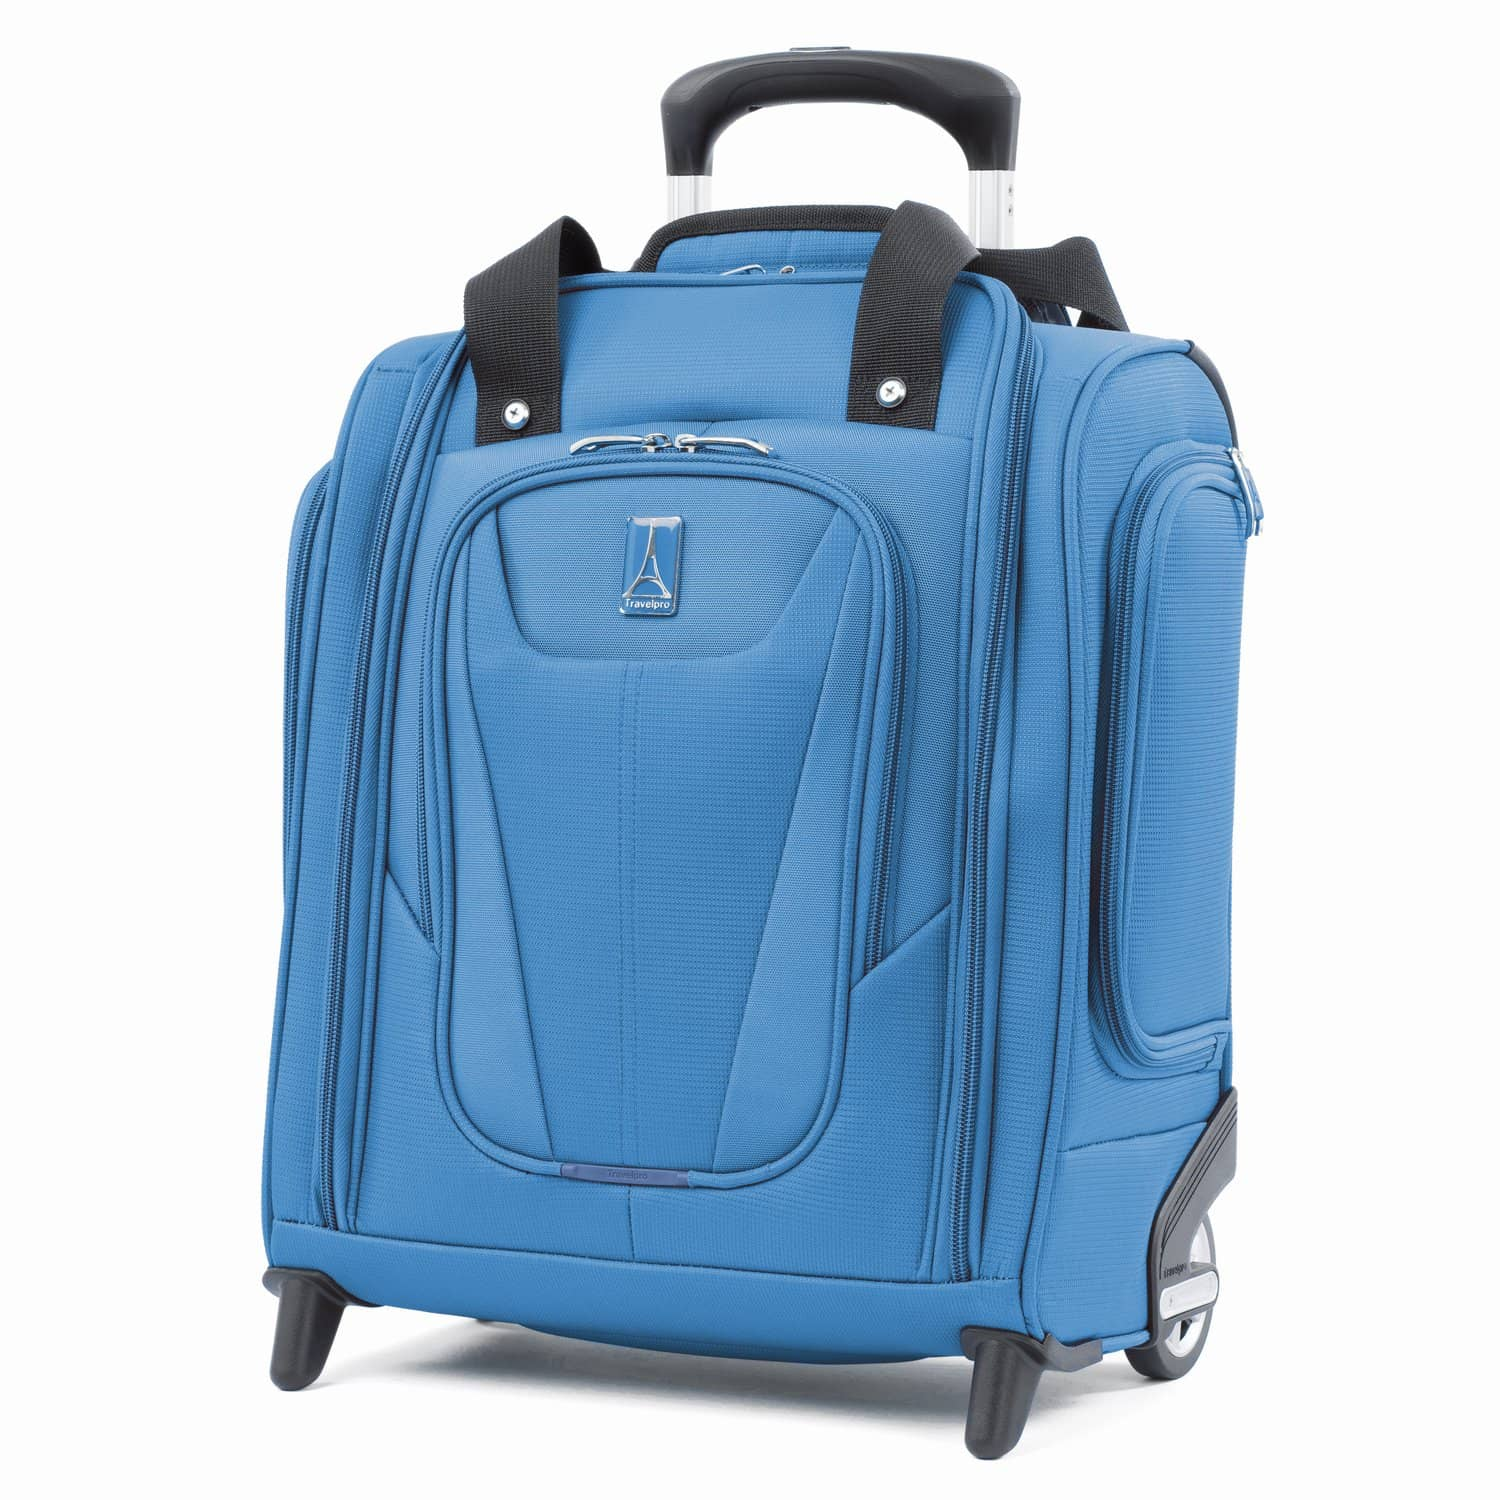 Travelpro Maxlite® 5 Rolling Underseat Carry-on AZURE BLUE